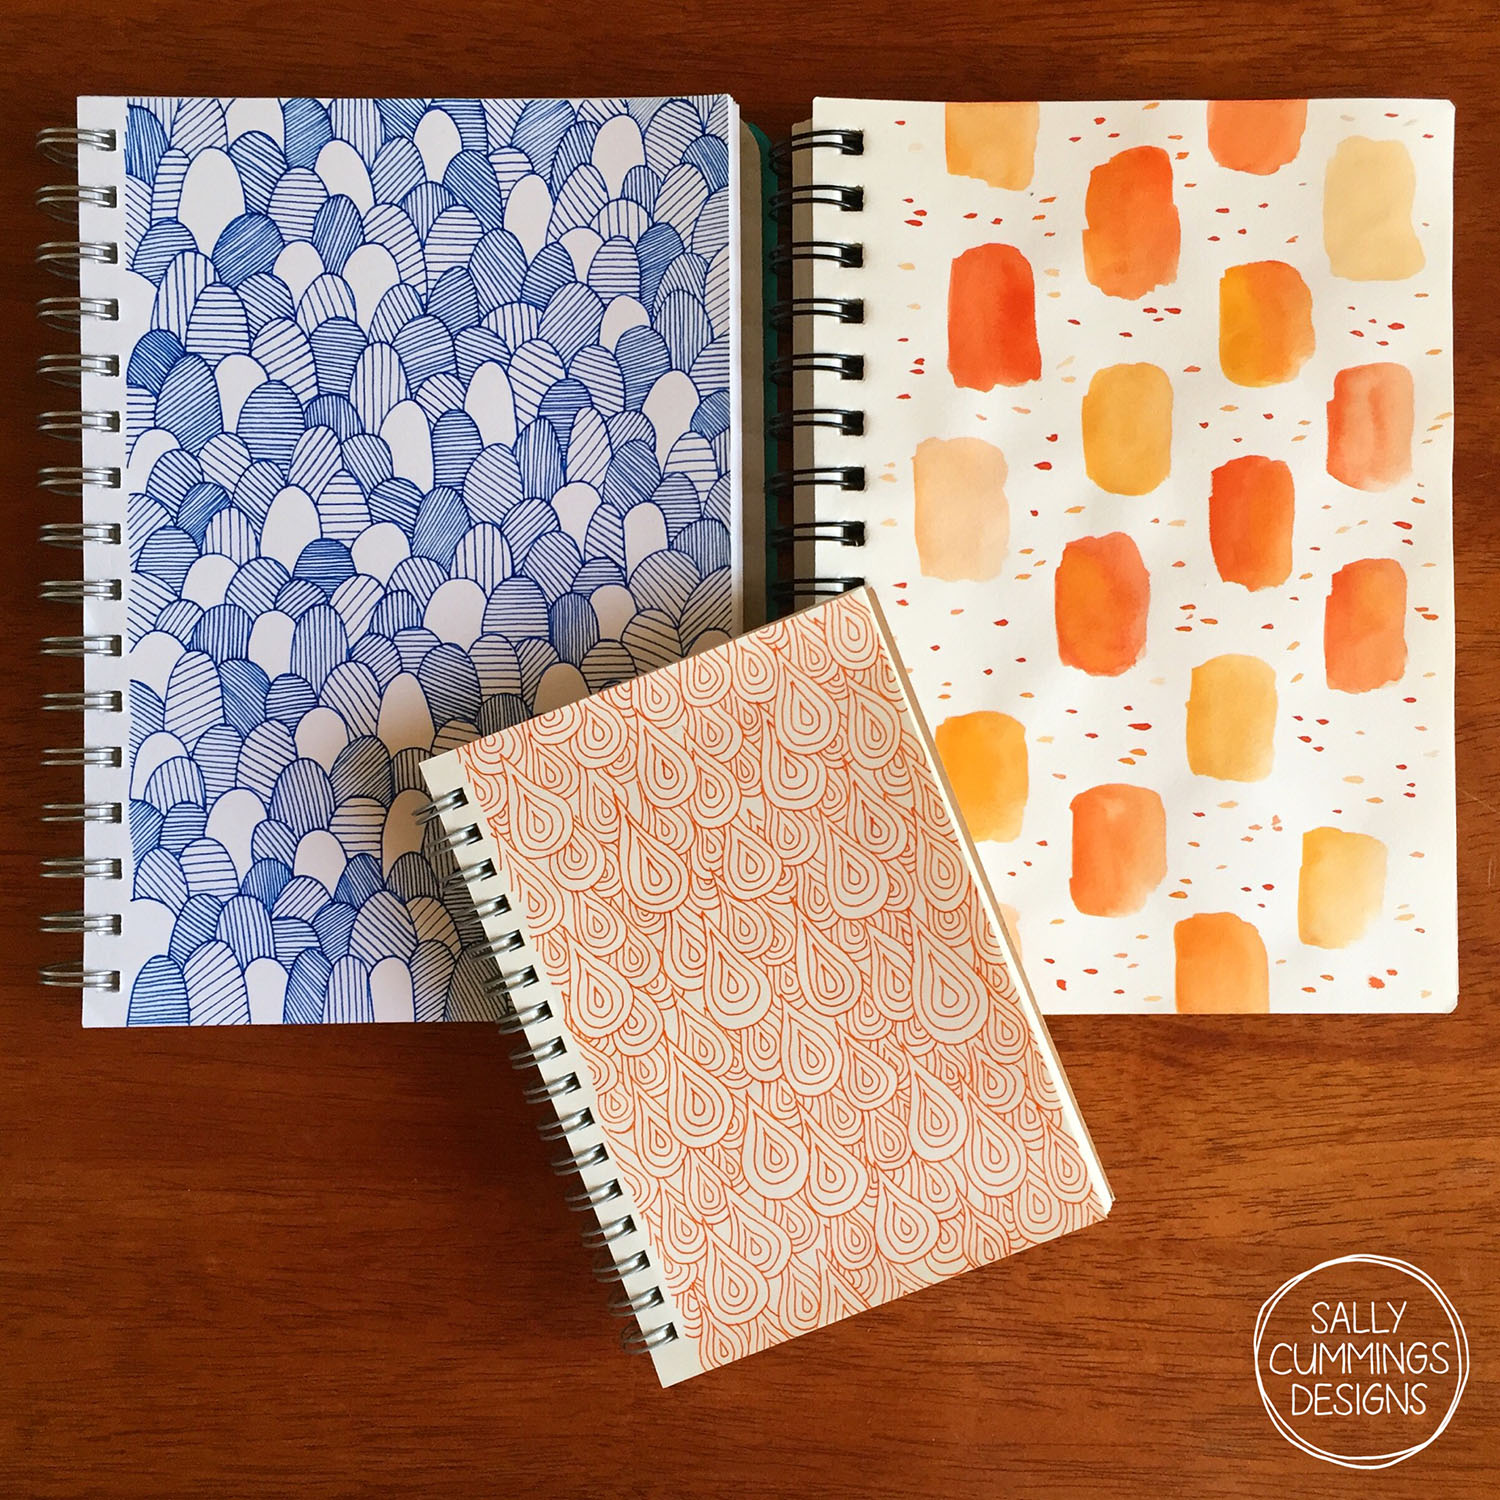 Sally Cummings Designs - Sketchbooks